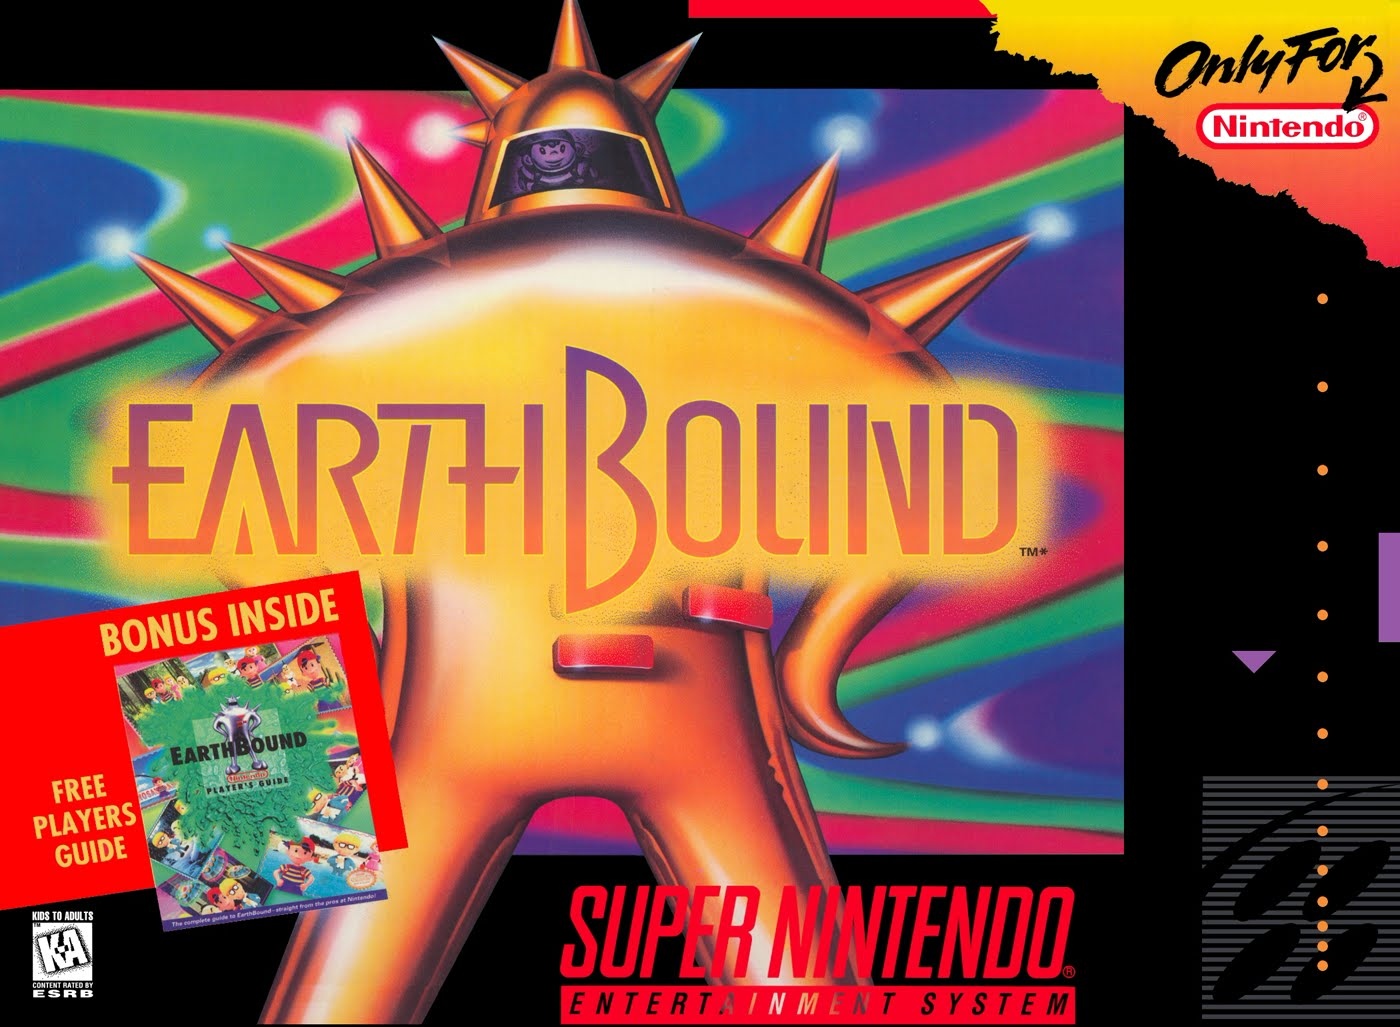 Happy 21st Anniversary Earthbound (SNES) - #GTUSA 1